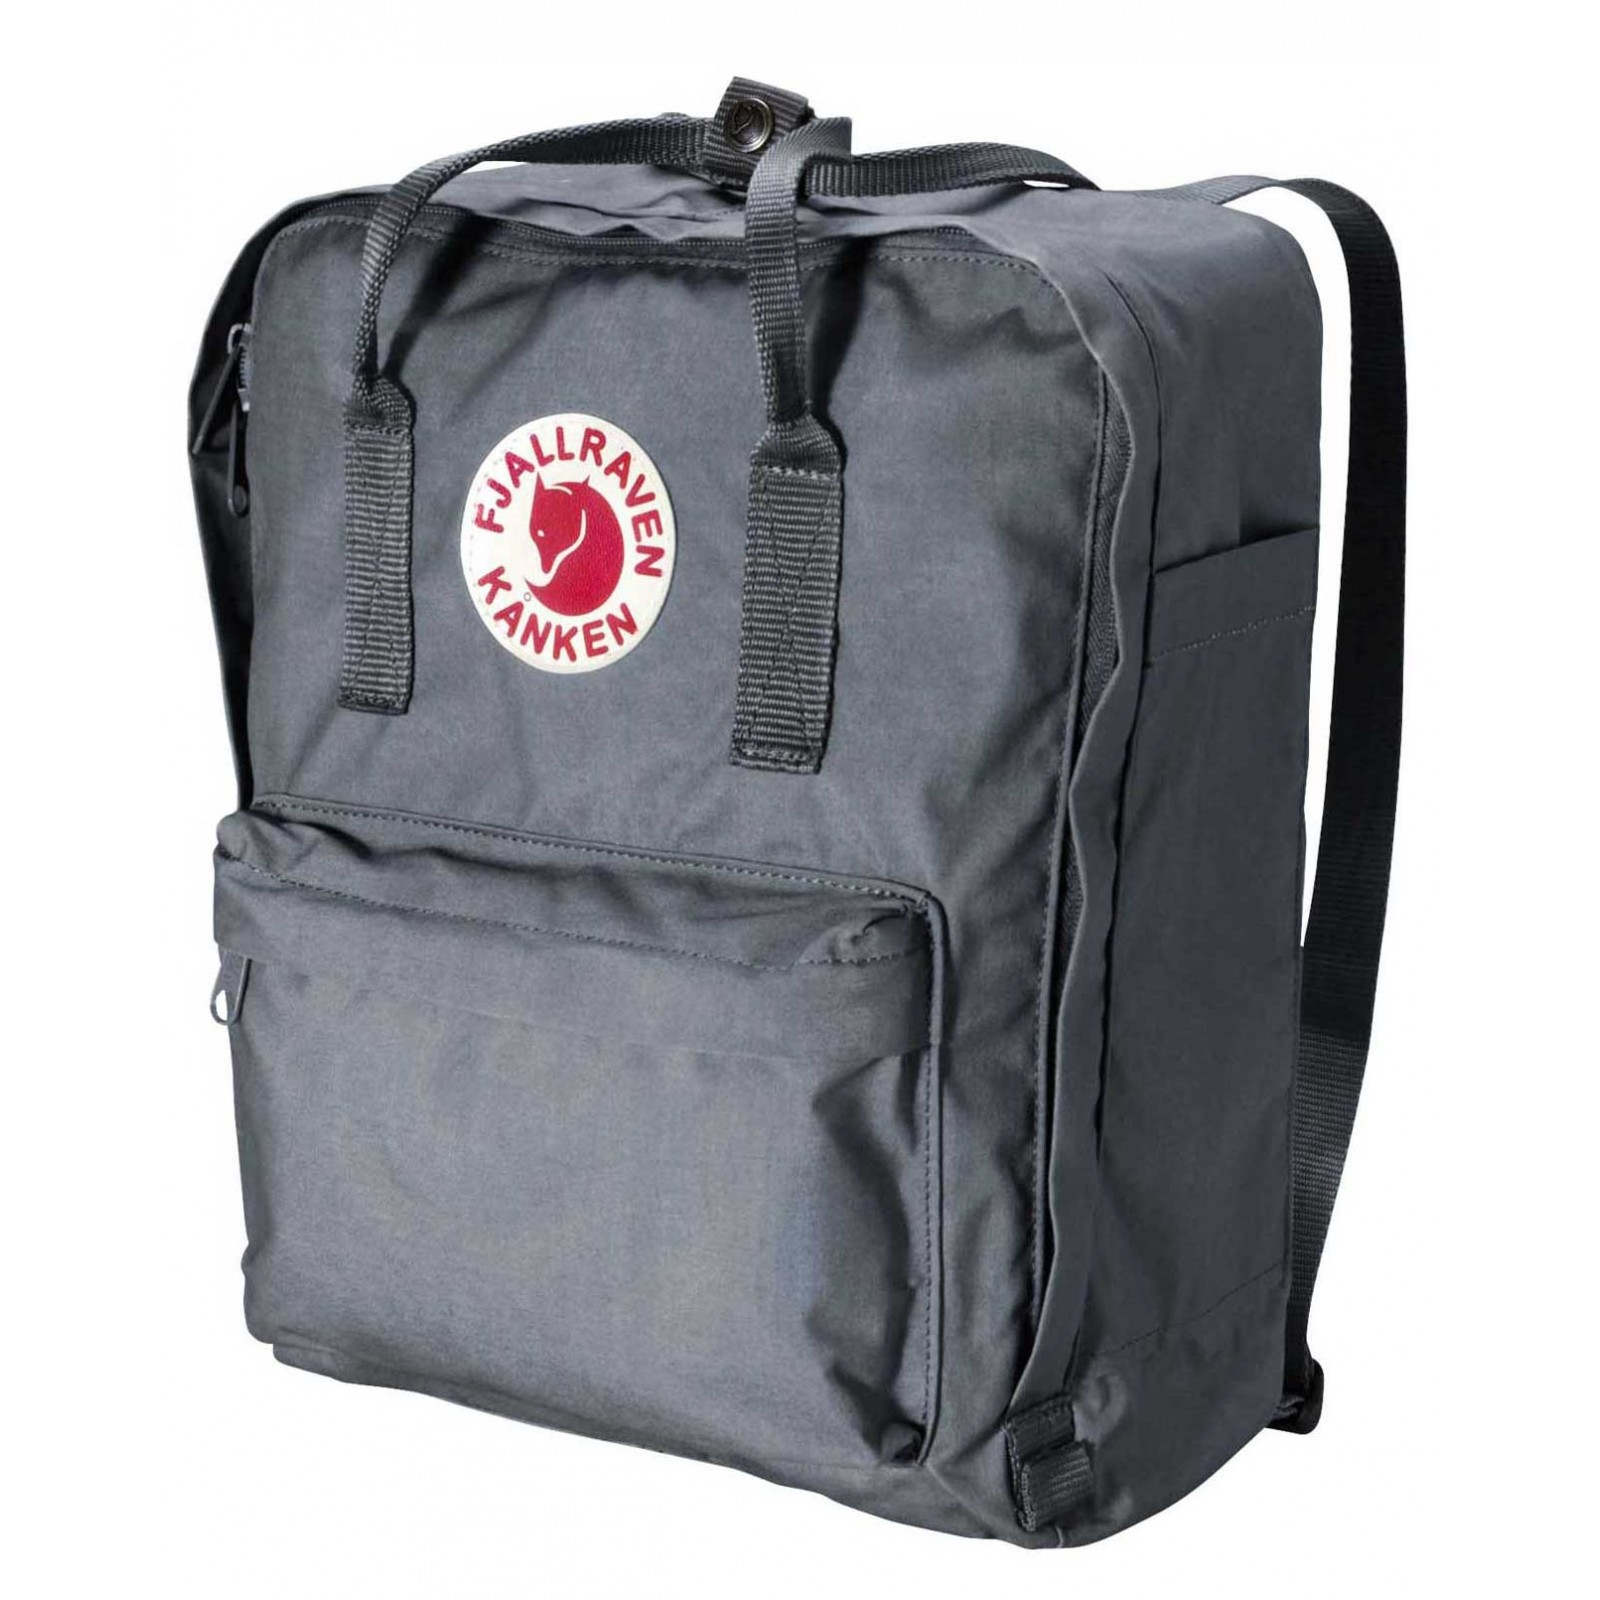 fjallraven kanken classic backpack in graphite